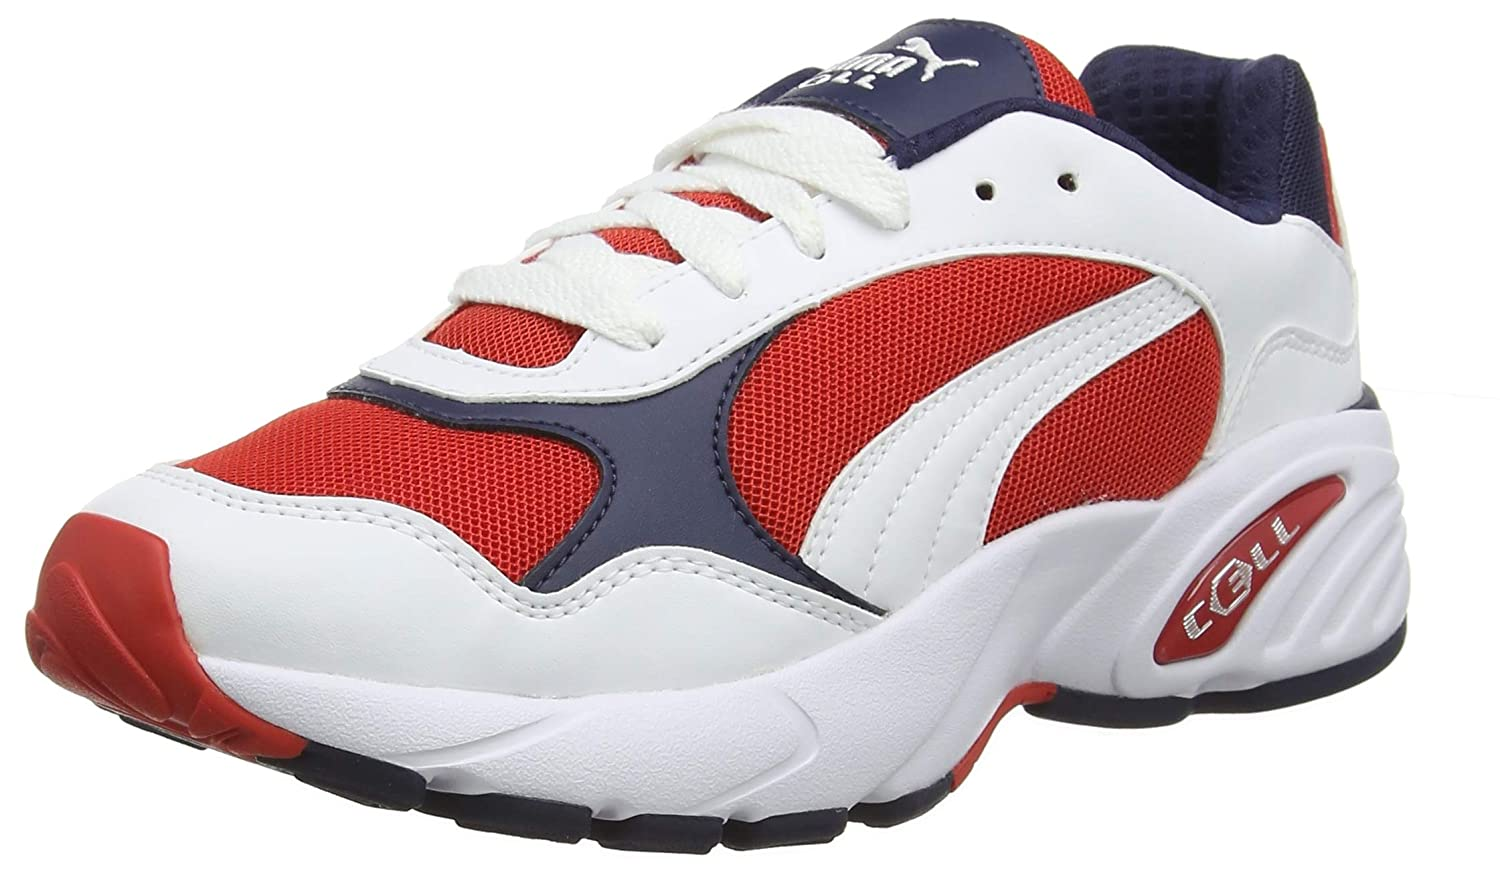 aed7a4ef08 Puma Adults  Cell Viper Low-Top Sneakers  Amazon.co.uk  Shoes   Bags